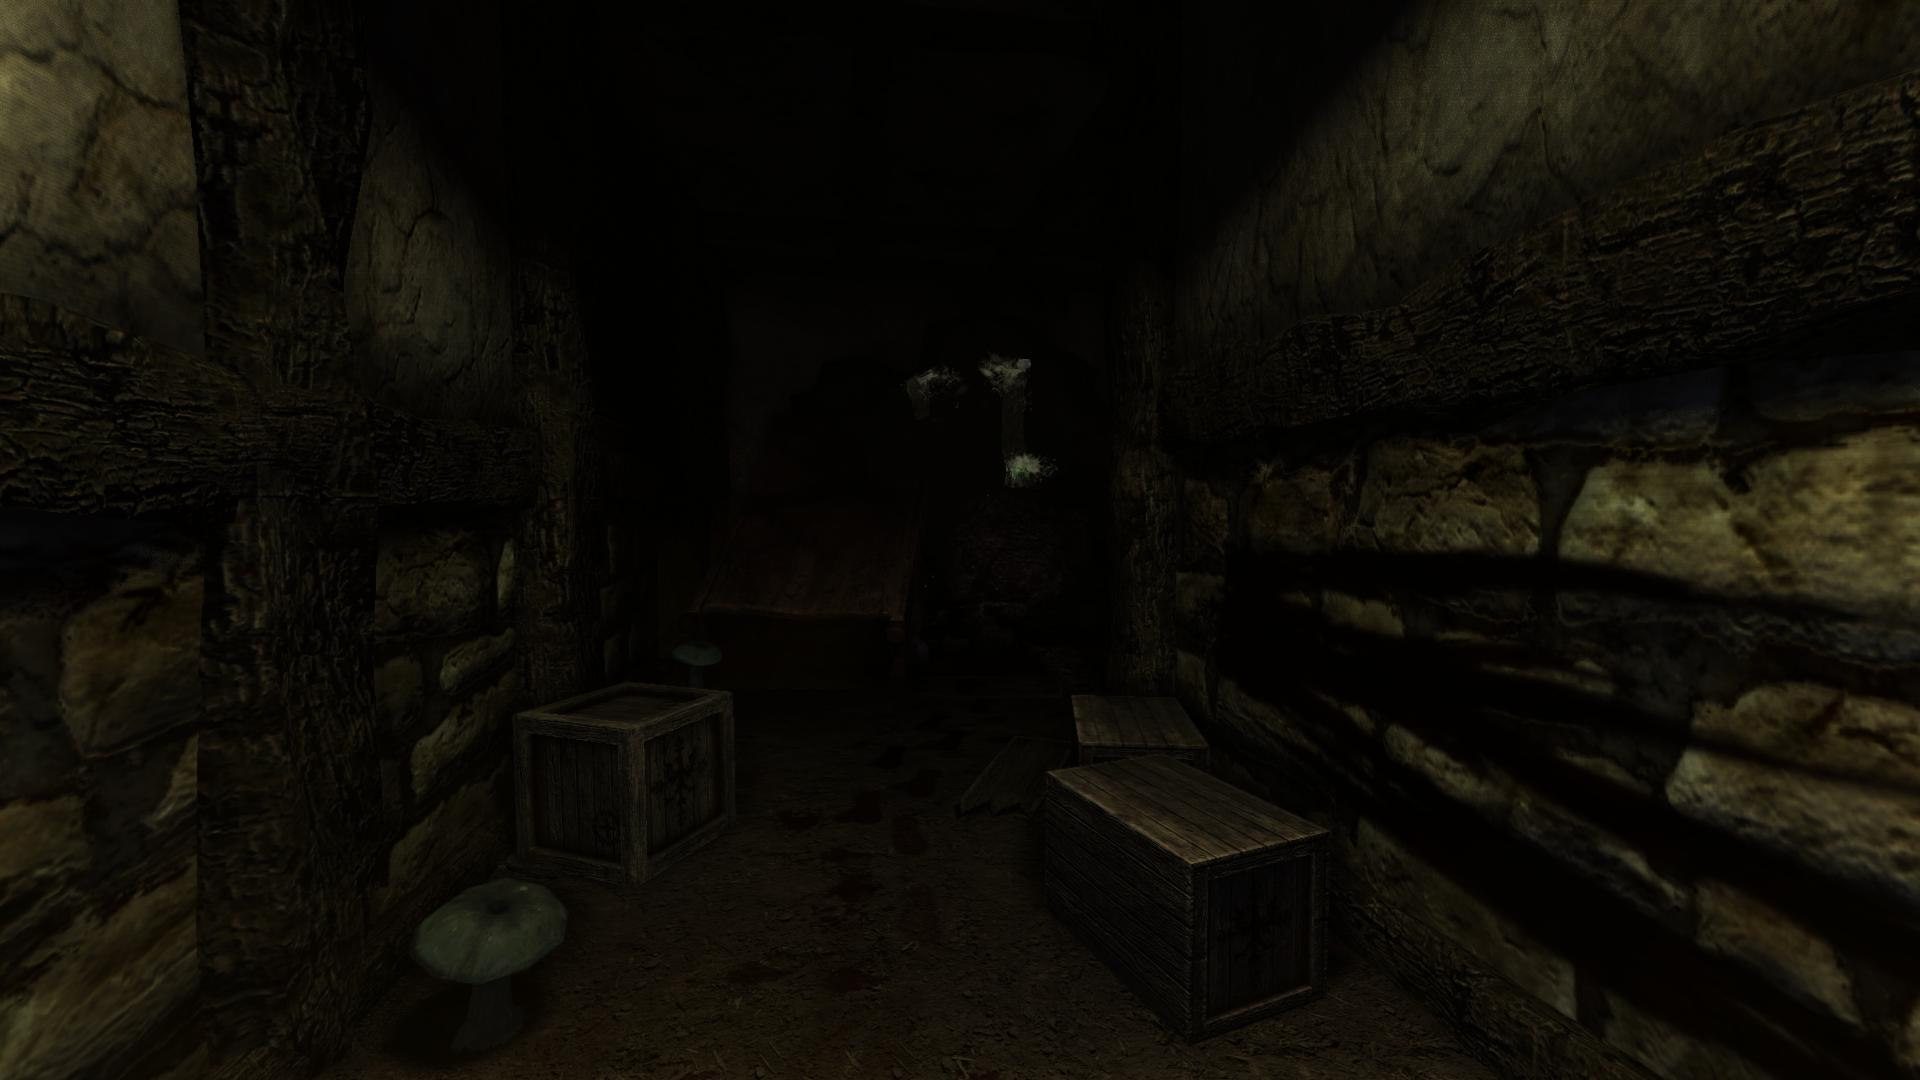 Creepy Mysterious Footsteps Image Premonition  A Full - Dark creepy basement